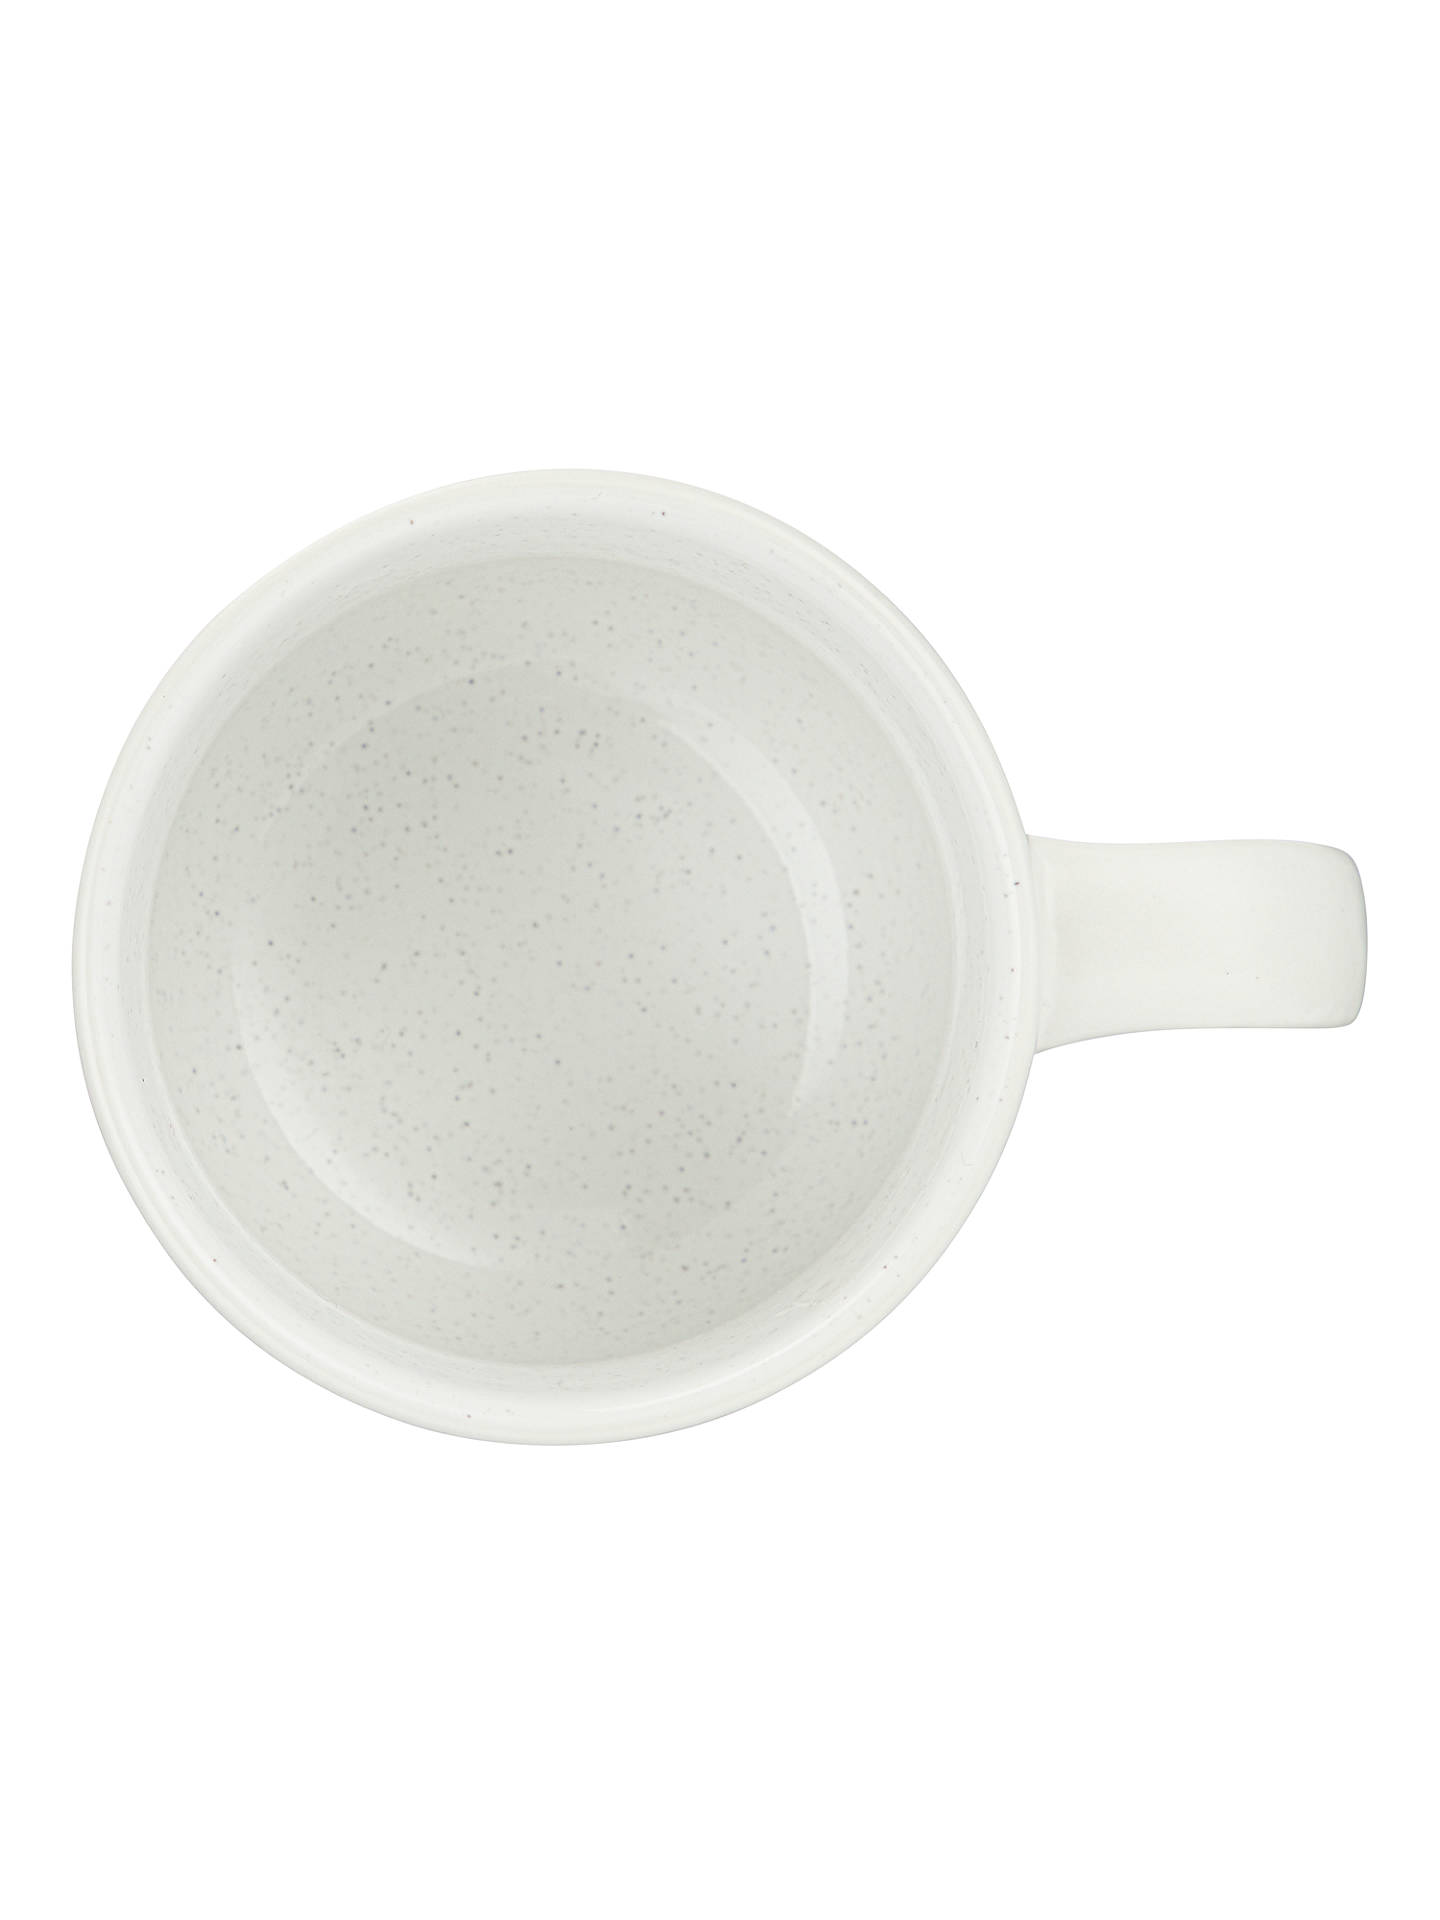 BuyJohn Lewis & Partners Glaze Speckle Mug, 300ml, White Online at johnlewis.com